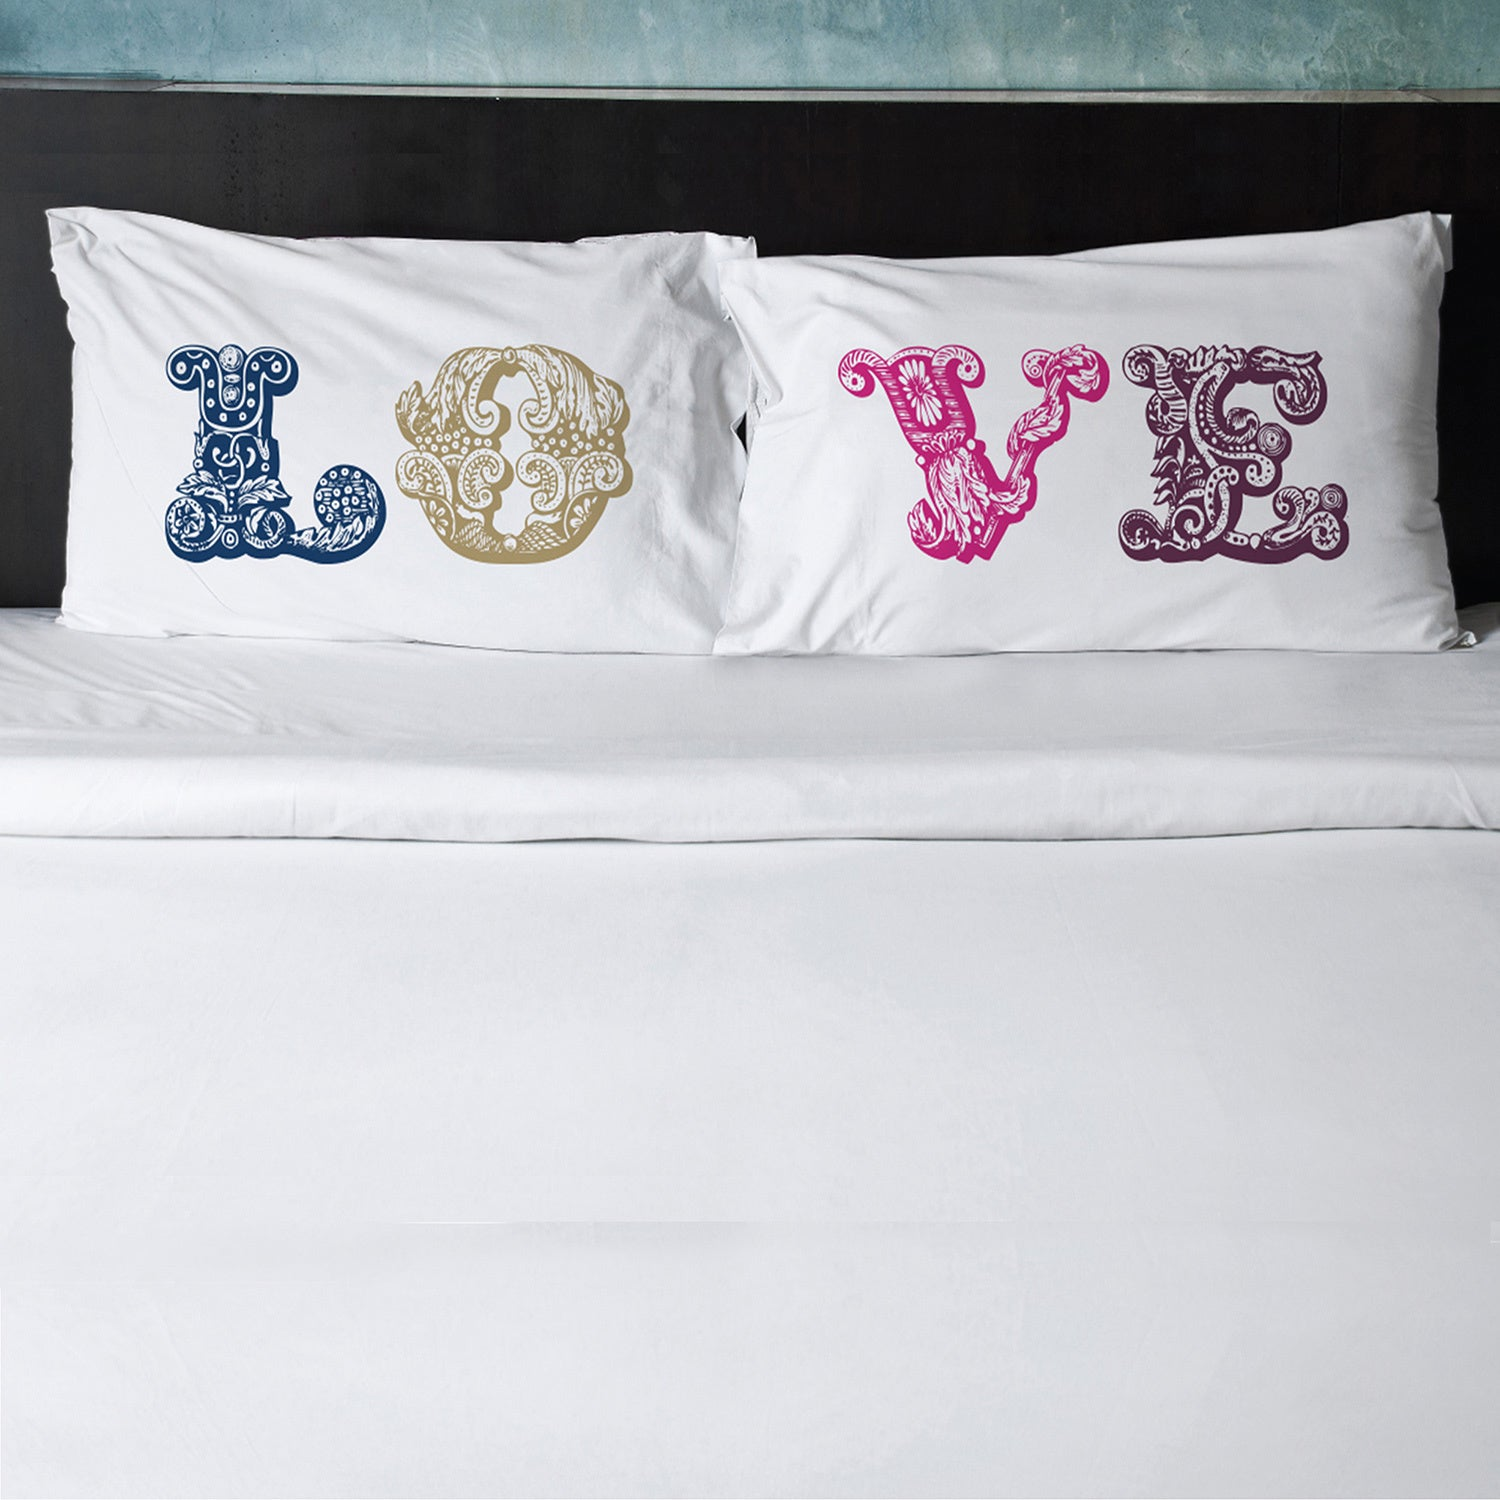 Nice Pillowtalk Pillowcases, Pillowcases With Phrases (Set Of 2)   Free Shipping  On Orders Over $45   Overstock.com   17742560 Awesome Design